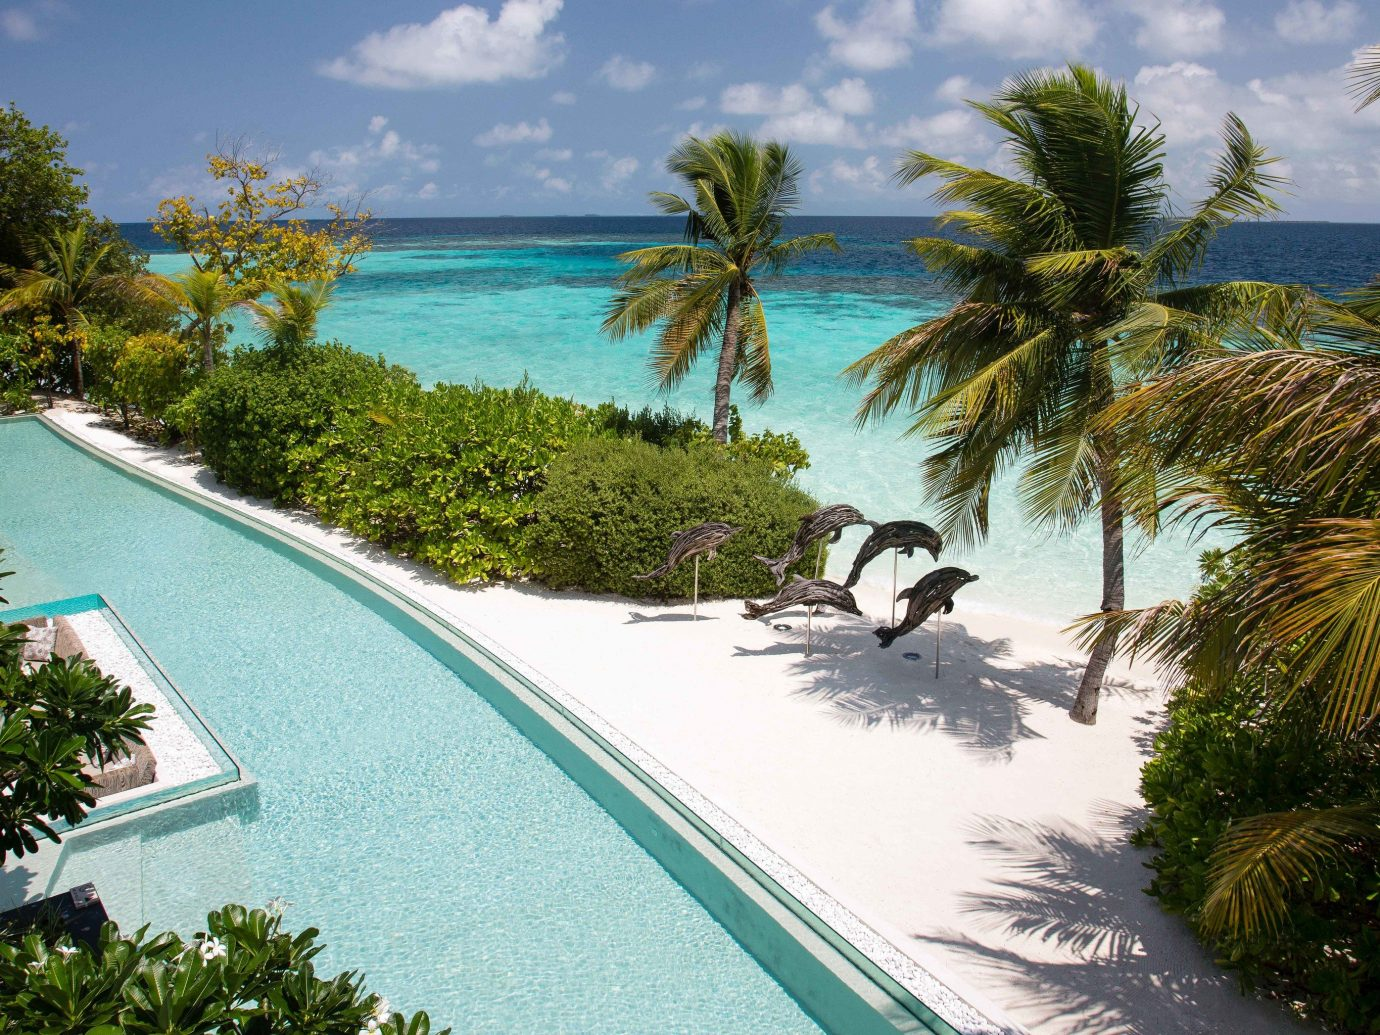 Pool and beach at Coco Prive in the Maldives